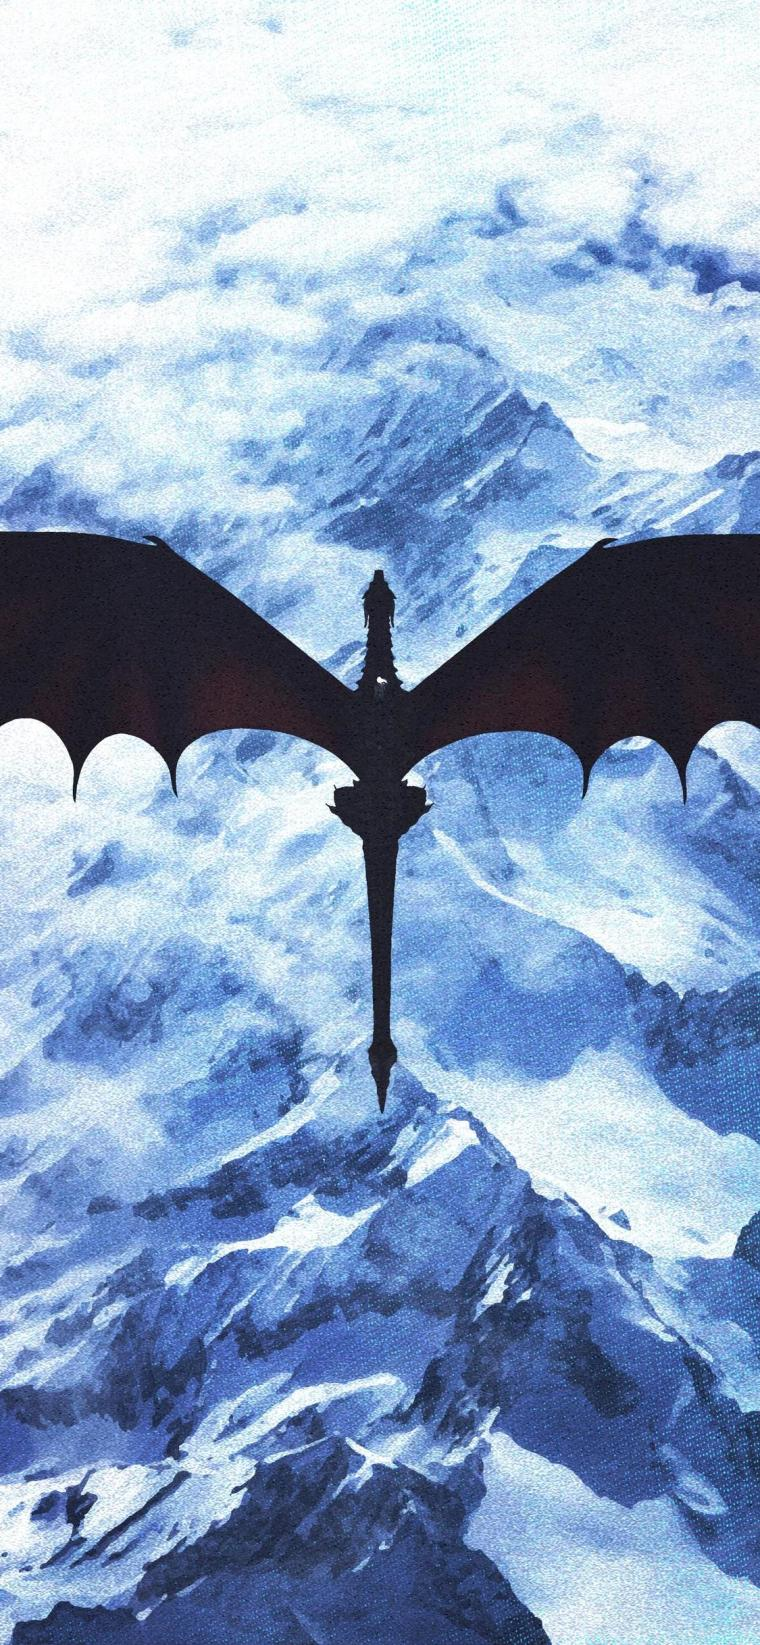 game-of-thrones-dragon-artwork-1125x2436 iPhone game of thrones wallpaper